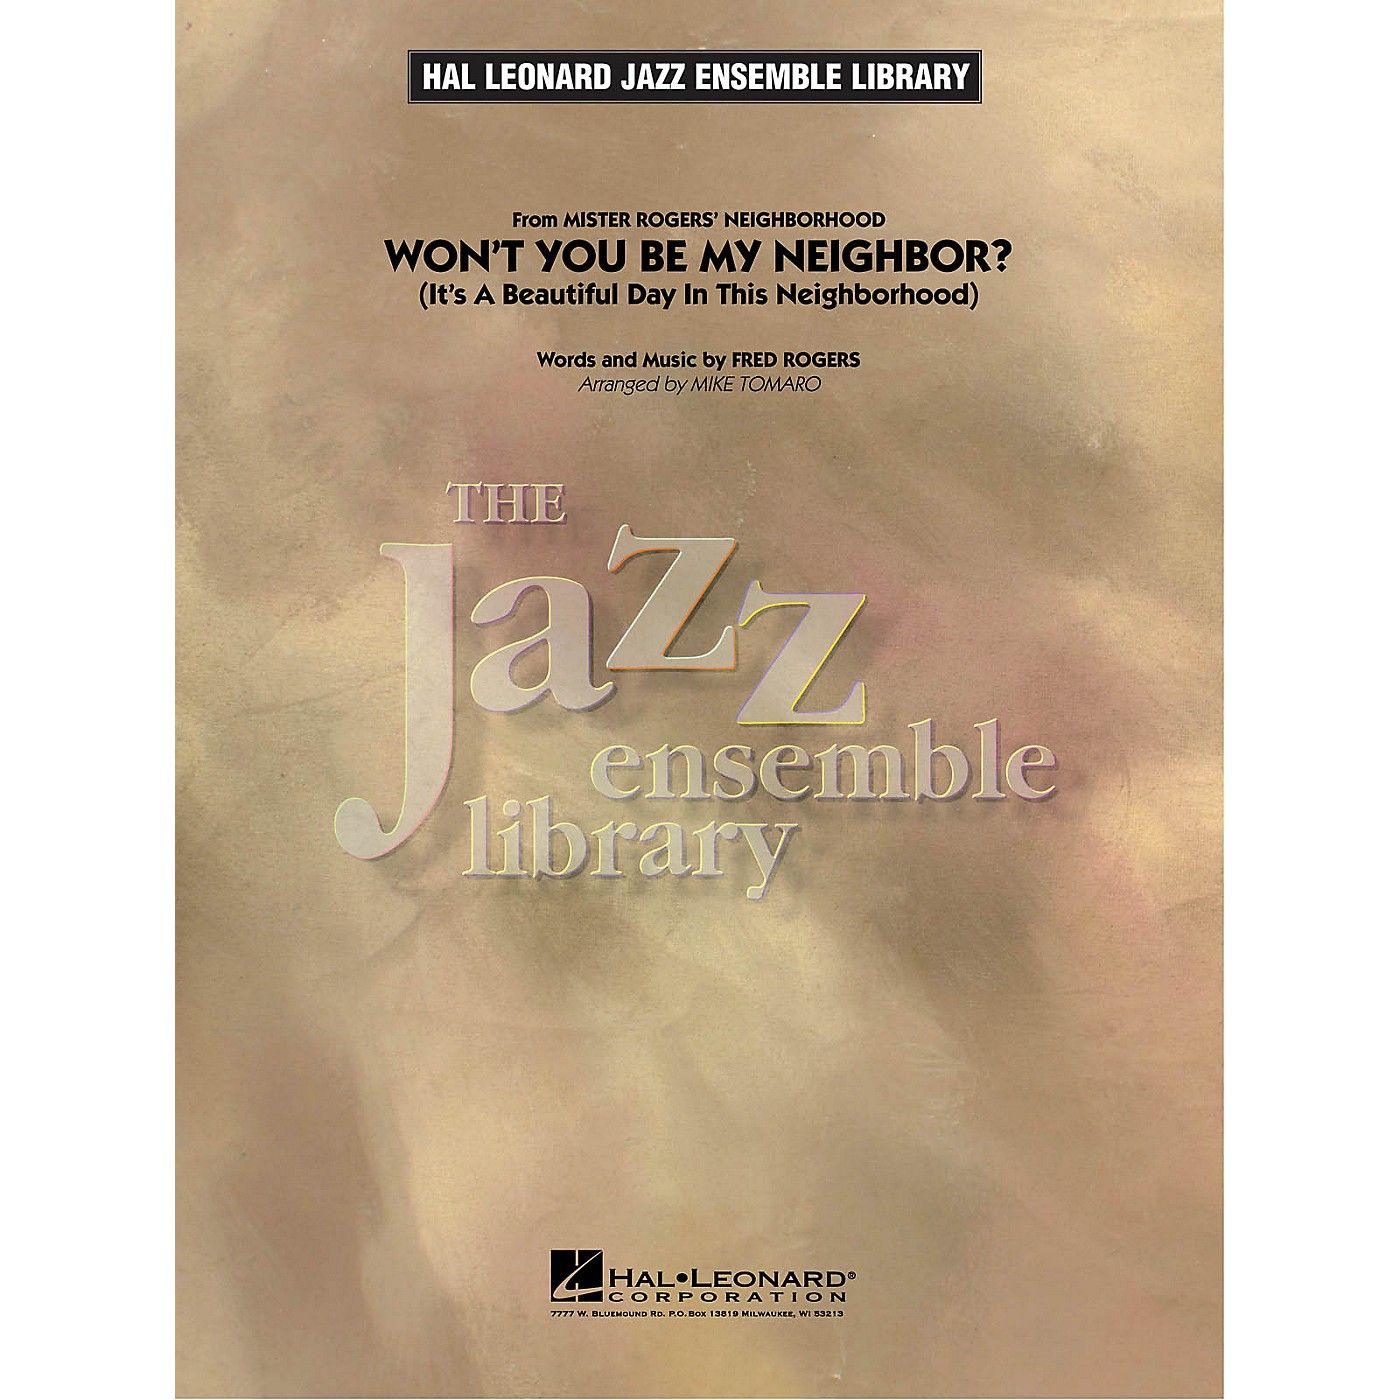 Hal Leonard Won't You Be My Neighbor? (It's A Beautiful Day In This Neighborhood) Jazz Band Level 4 by Mike Tomaro thumbnail